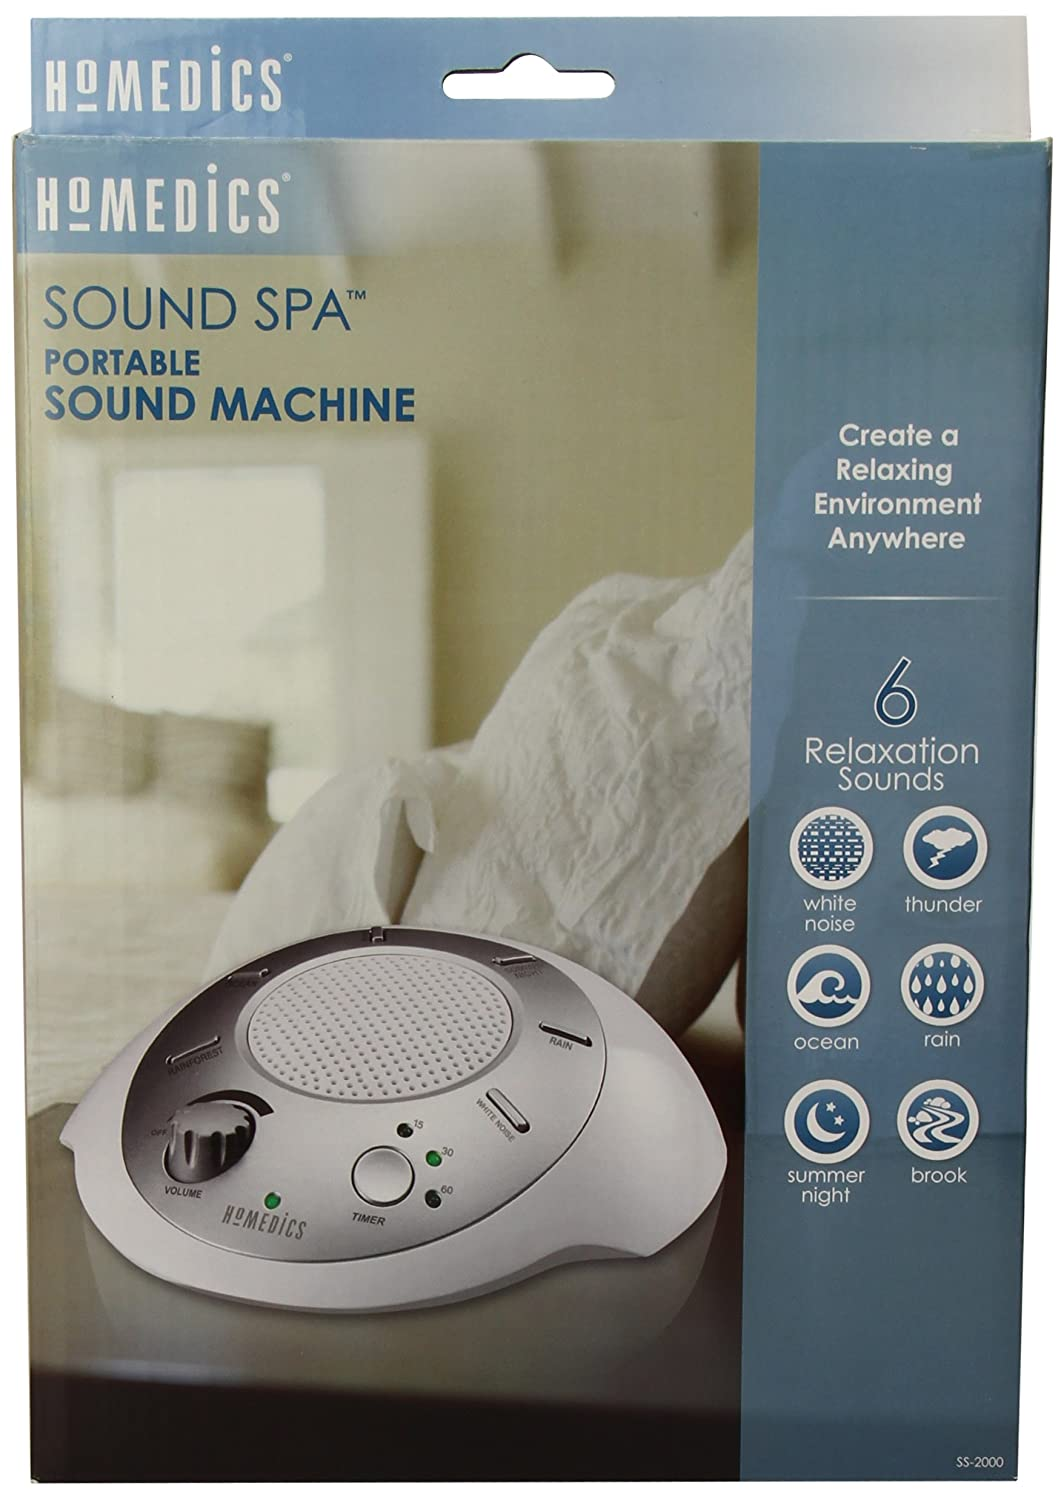 HoMedics SS-2000G/F-AMZ Sound Spa Relaxation Machine